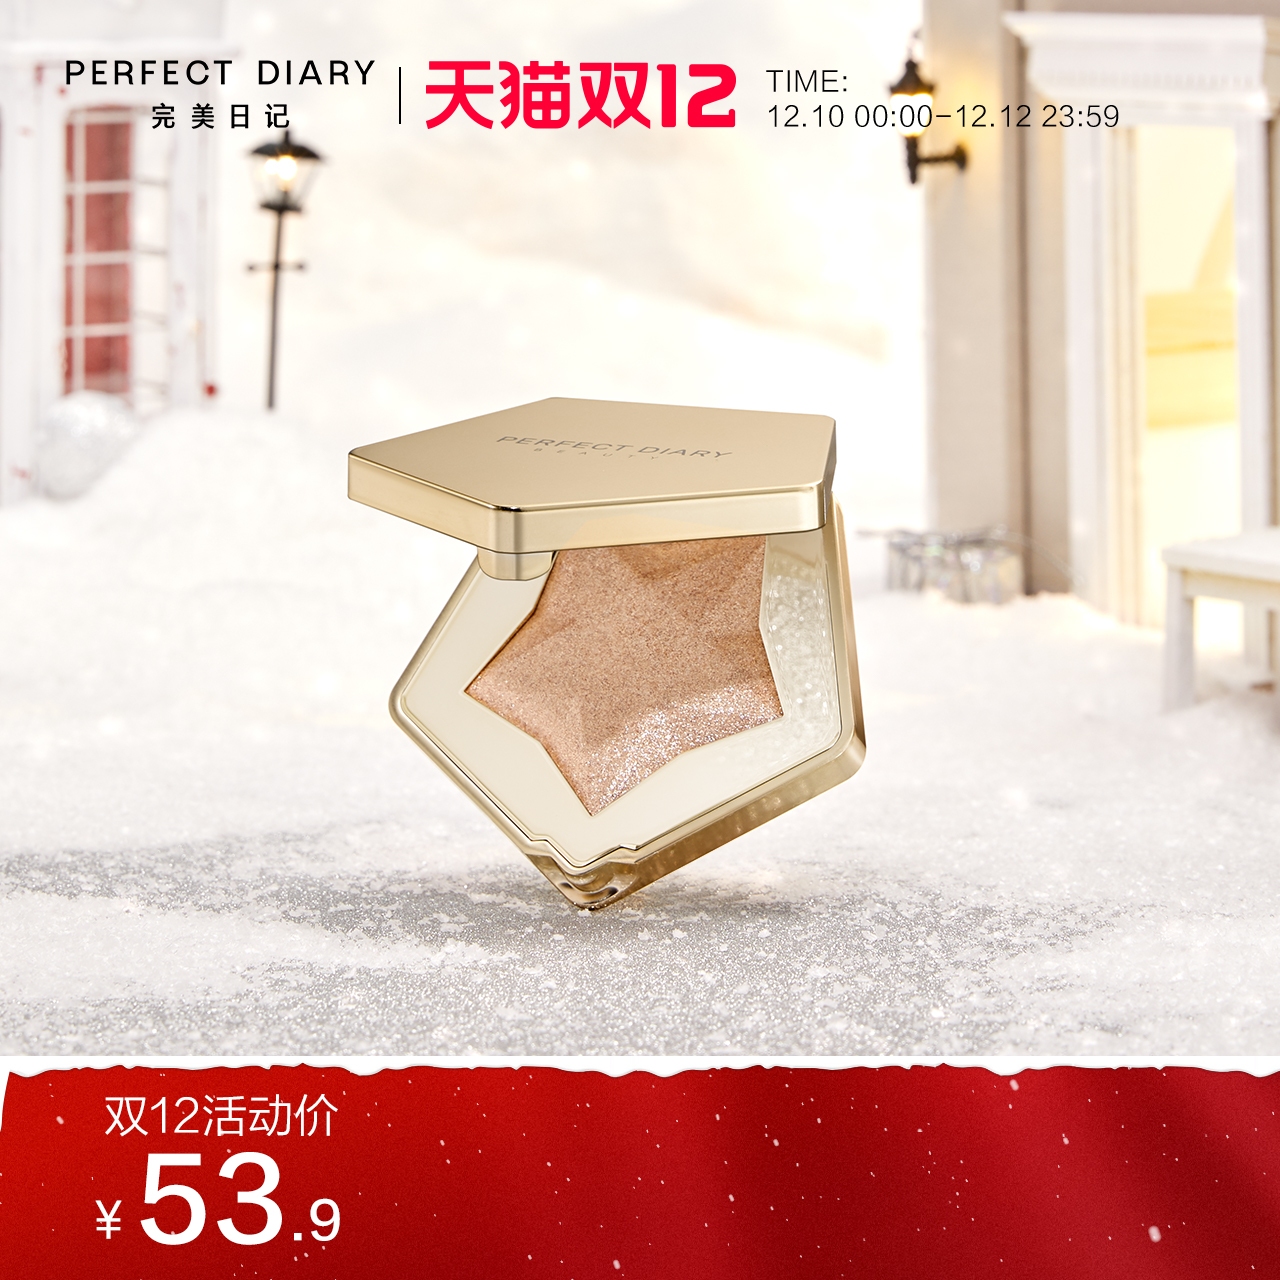 Perfect Diary Star Man highlight diamond trim all-in-one disc nose shadow pearl official flagship store parity official website